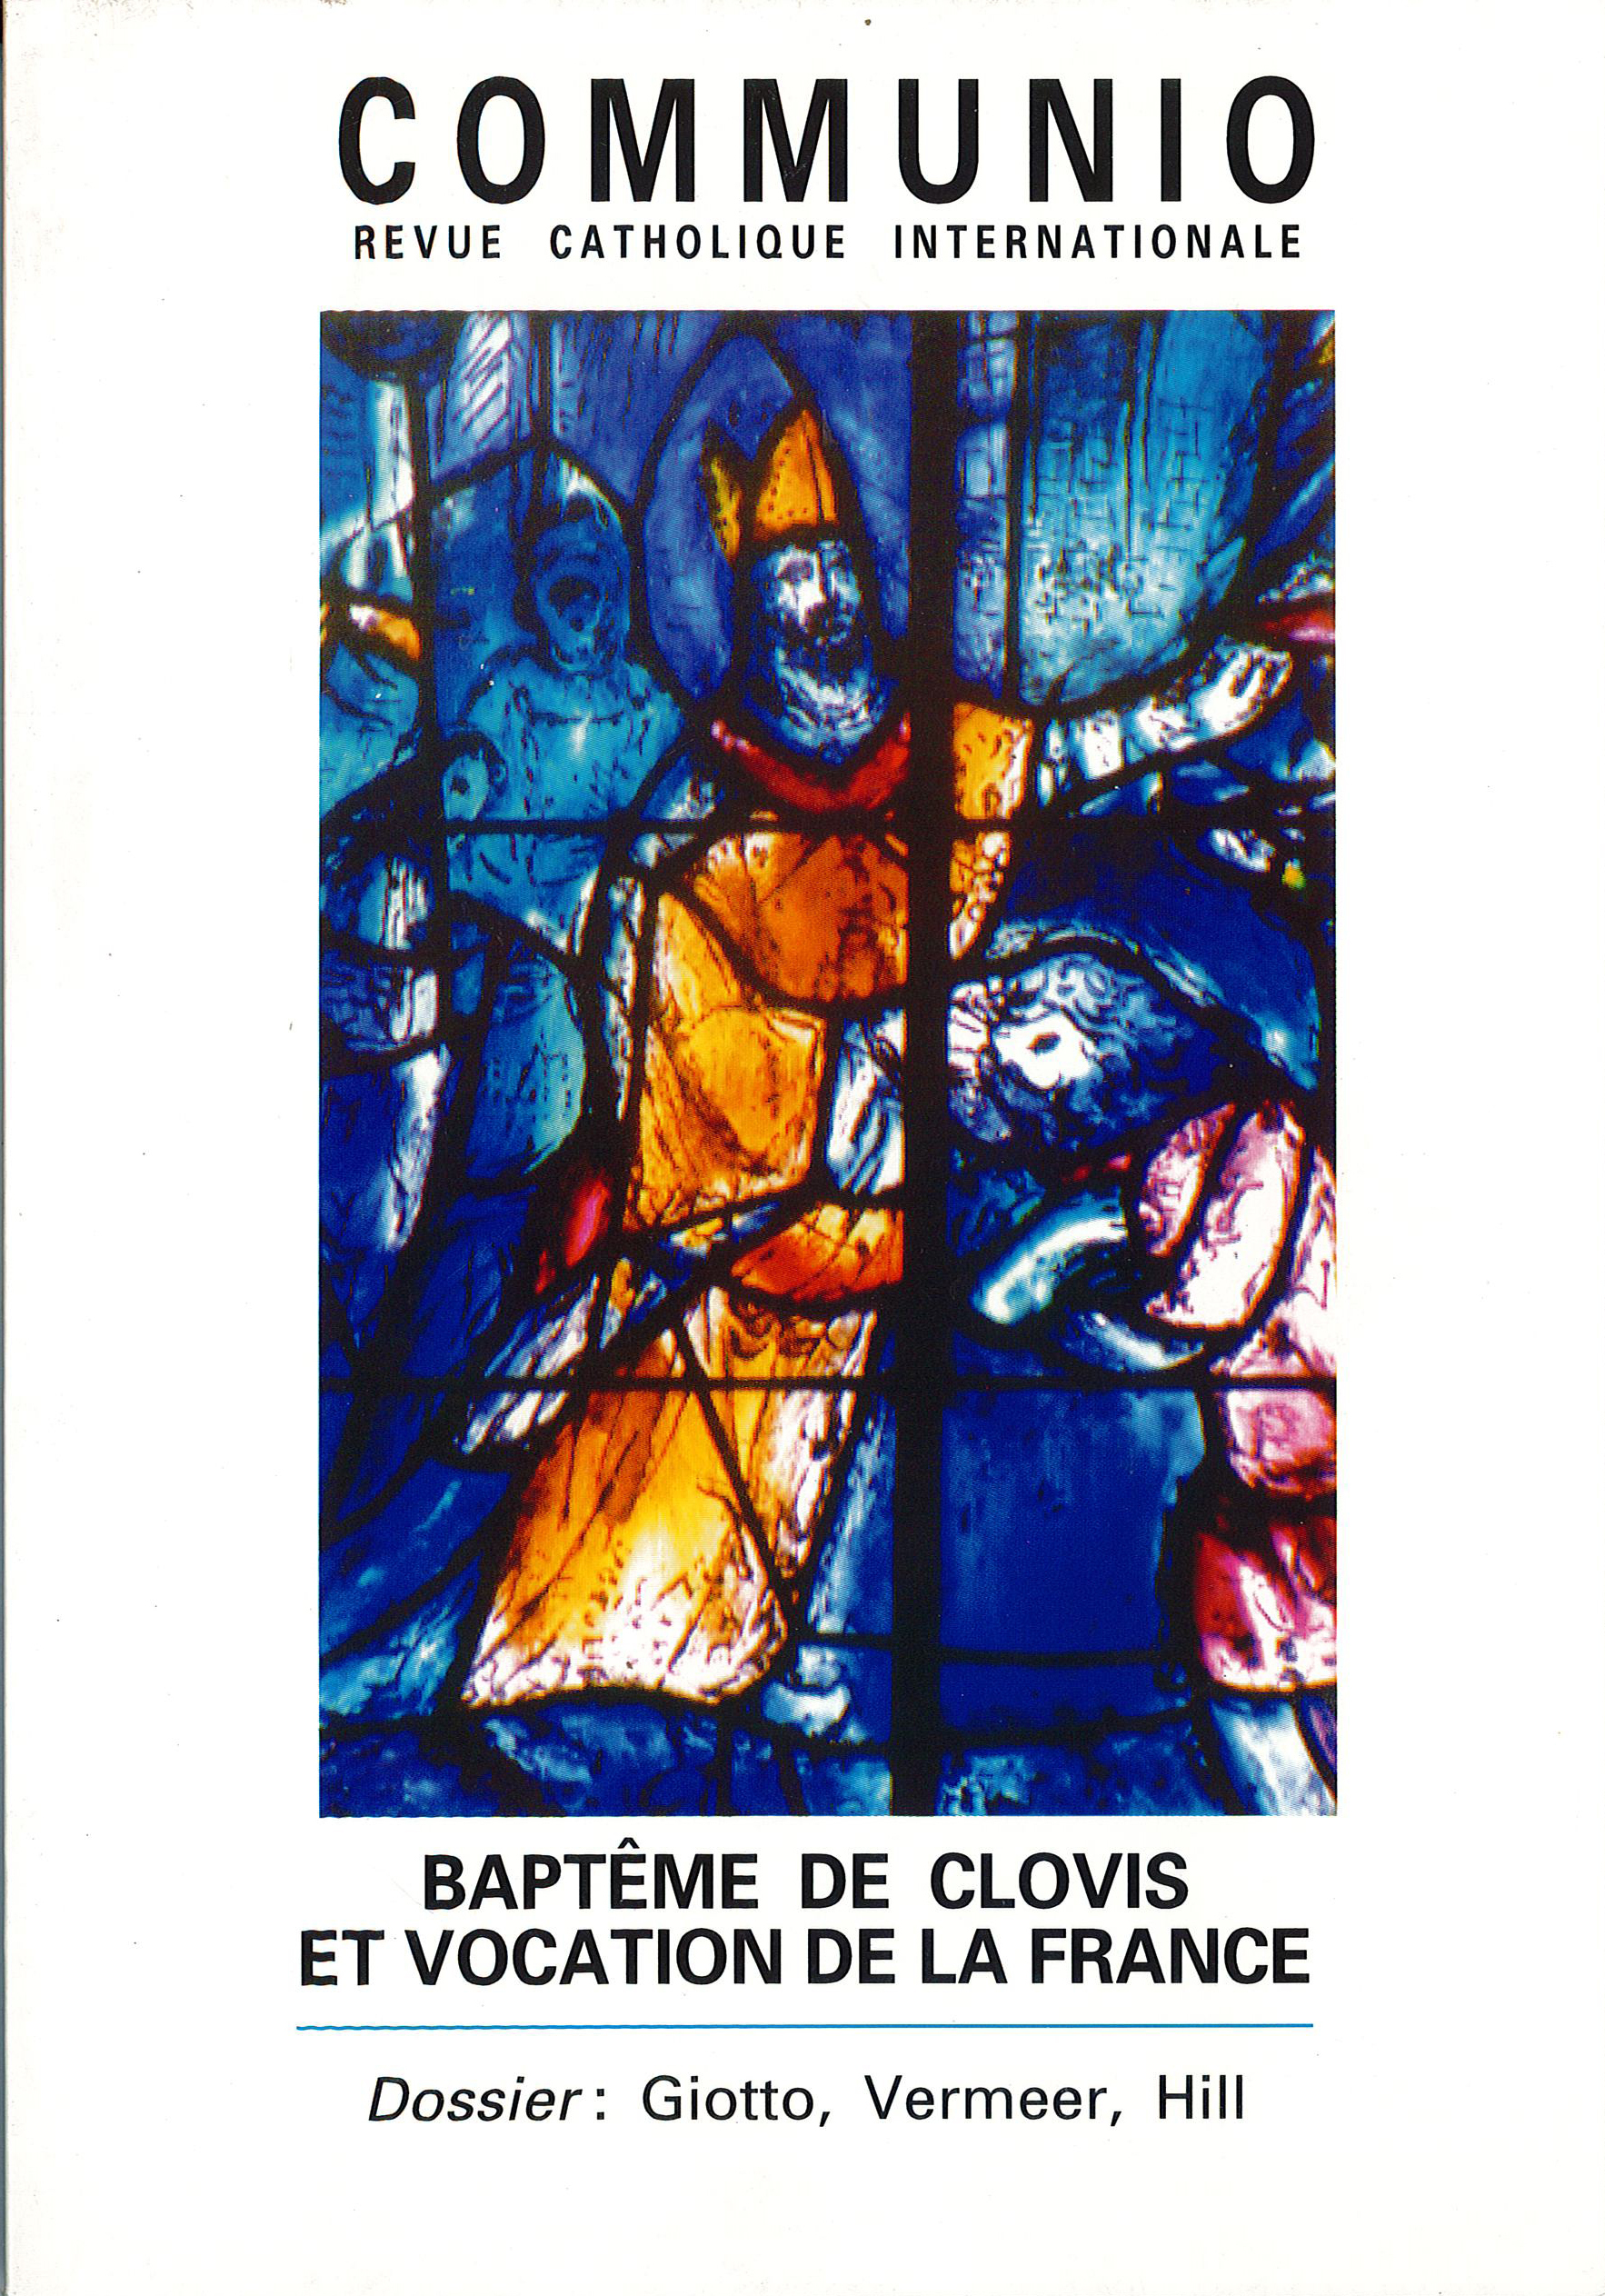 BAPTEME DE CLOVIS ET VOCATION DE LA FRANCE - N 125 (MAI-JUIN 1996)